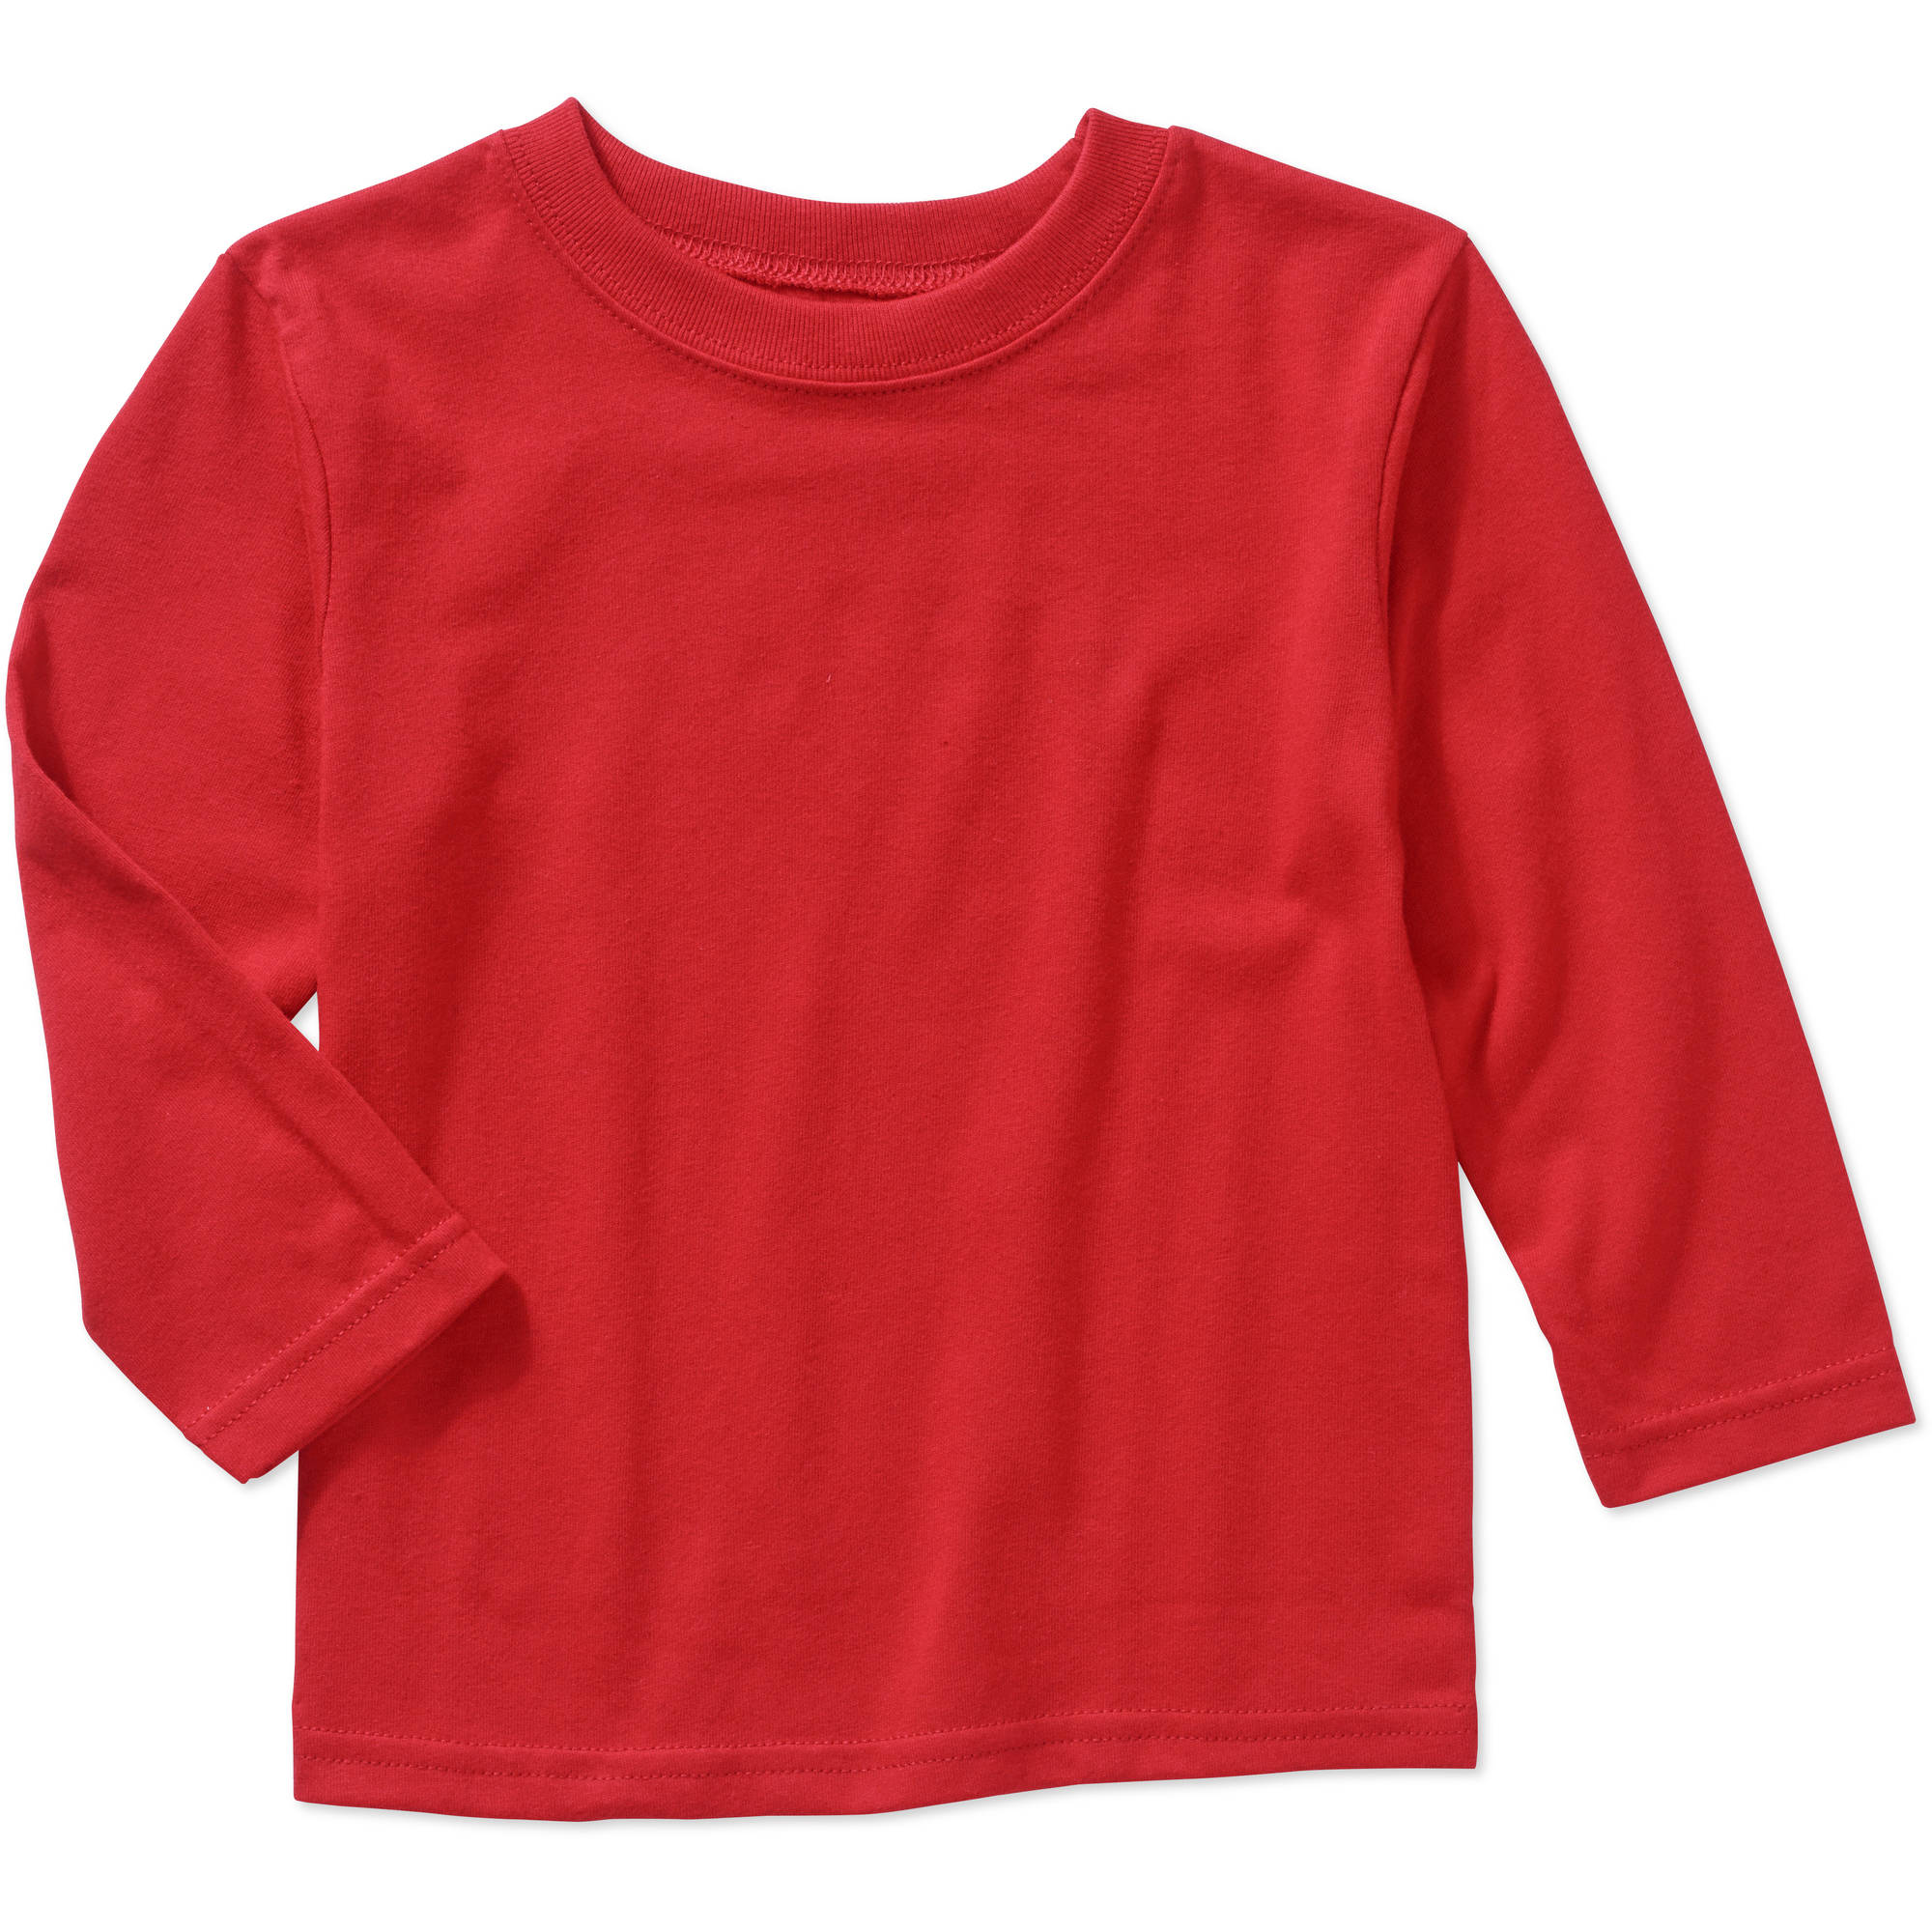 Garanimals Baby Toddler Boys' Long Sleeve Solid Tee Shirt